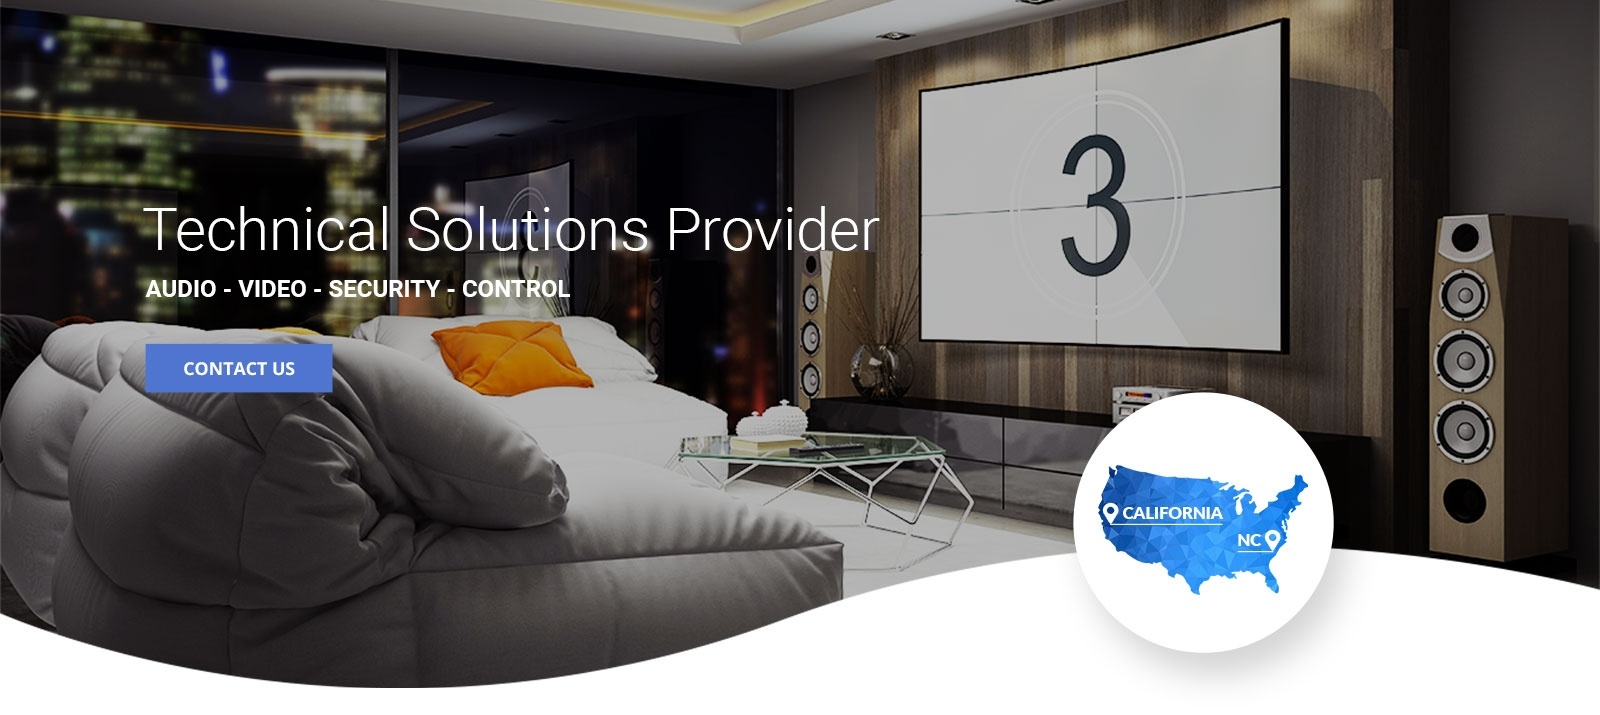 Technical Solutions Provider - Wave Connects